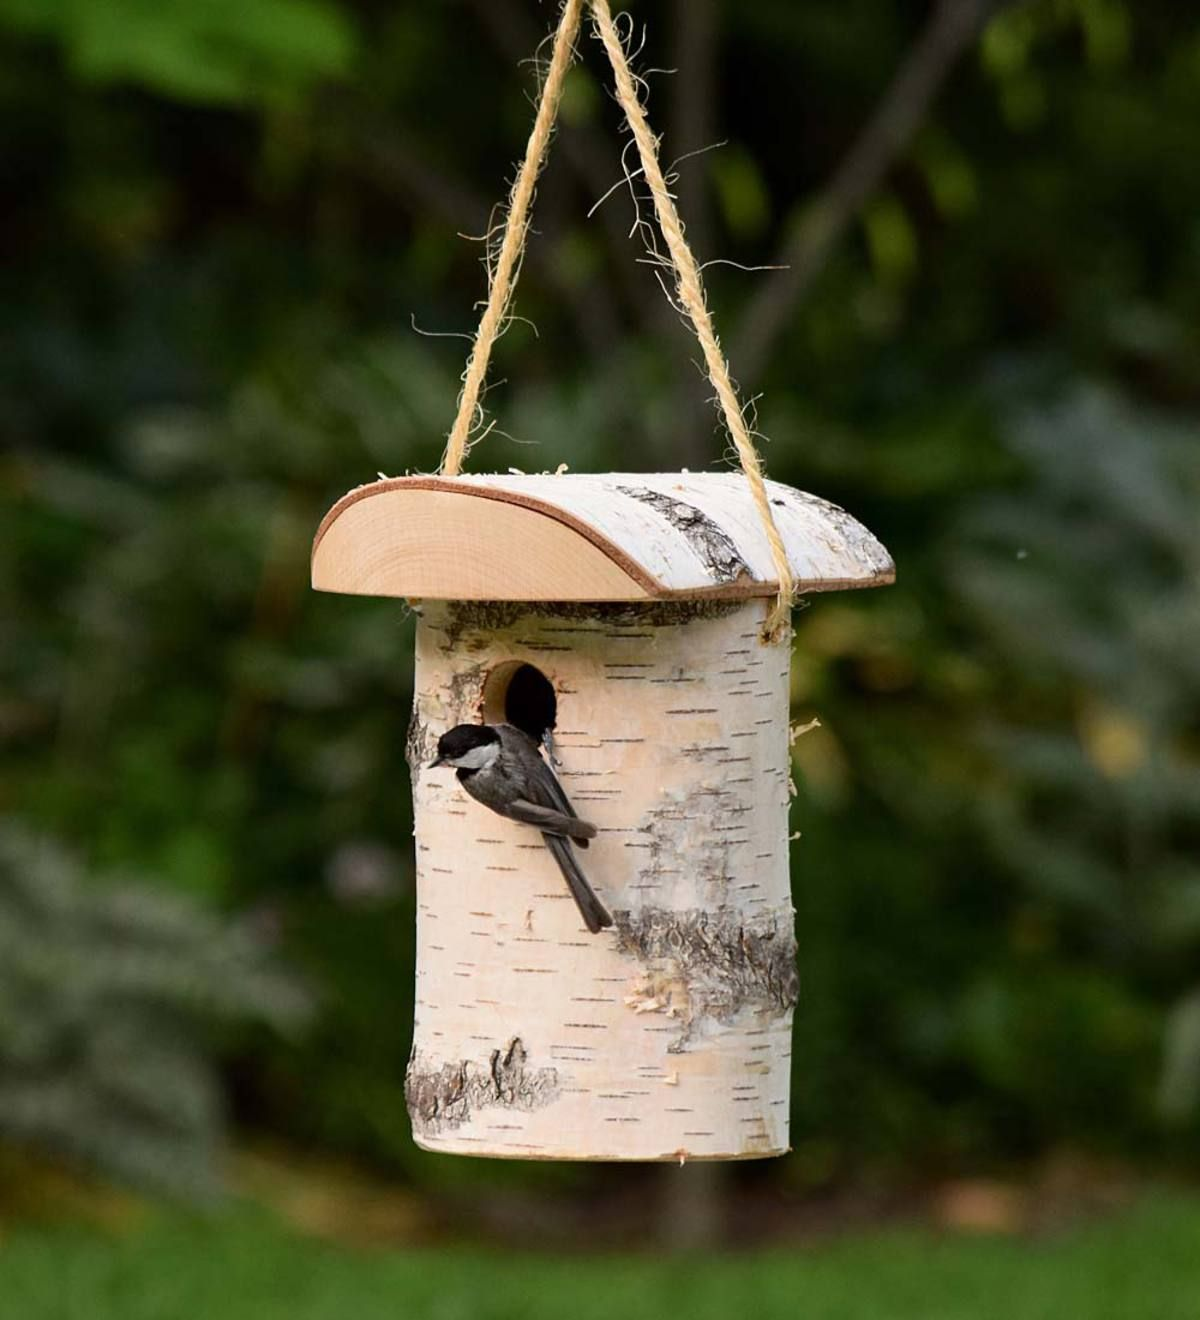 Our Handcrafted Birch Log Birdhouse is made from real